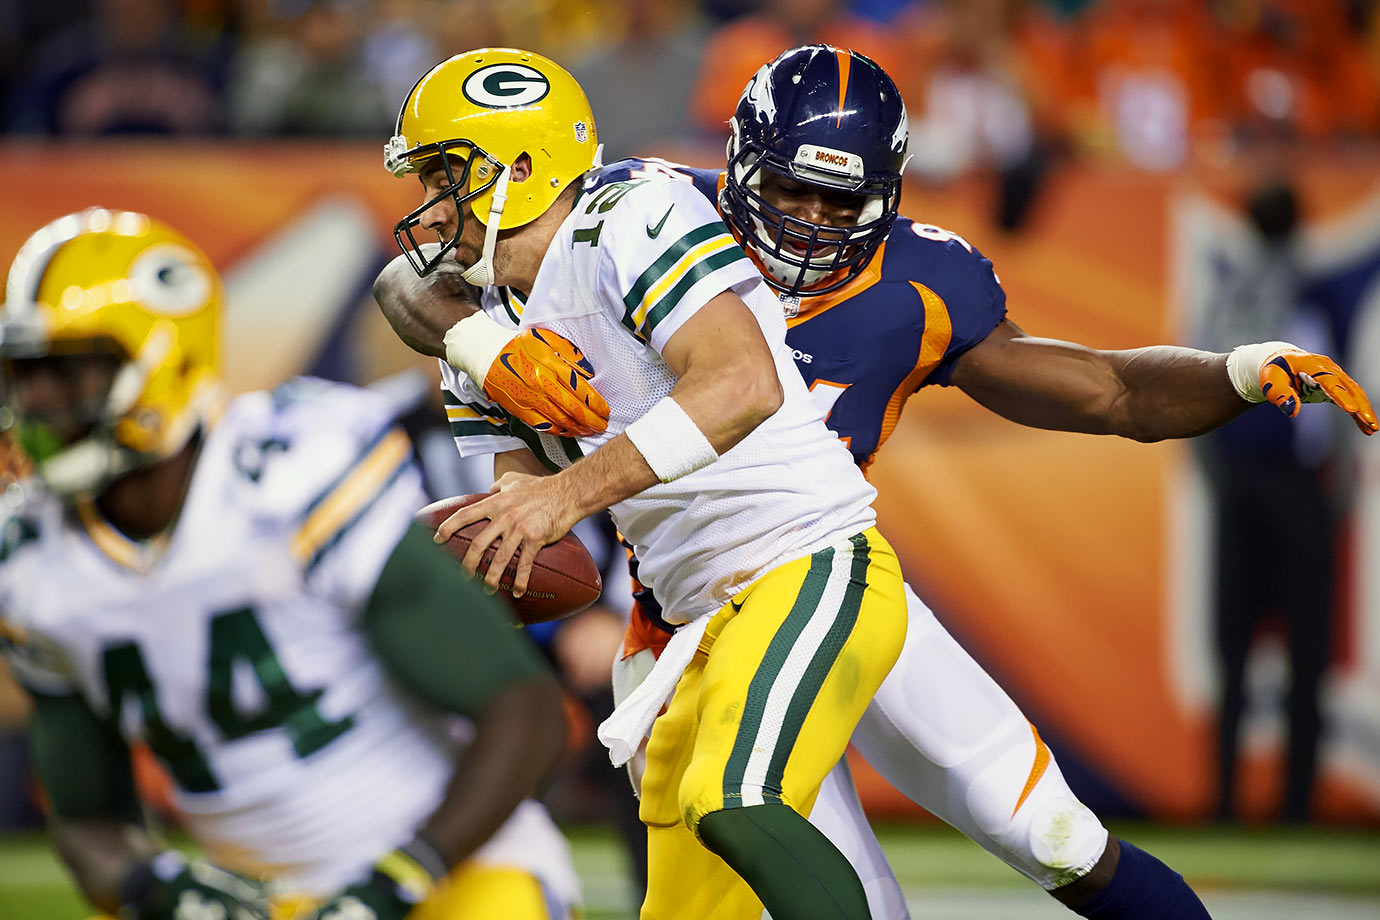 Denver jumped out to a 17-0 lead at Green Bay behind a stout defense and effective running game. The Broncos held quarterback Aaron Rodgers to just 77 yards and sacked him three times. Hillman had 60 yards rushing and two touchdowns on 19 carries, while fellow running back C.J. Anderson had 101 yards on the ground with one score. This game was never in doubt for the Broncos, who moved to 7-0 heading into a matchup with Manning's old team, the Indianapolis Colts.